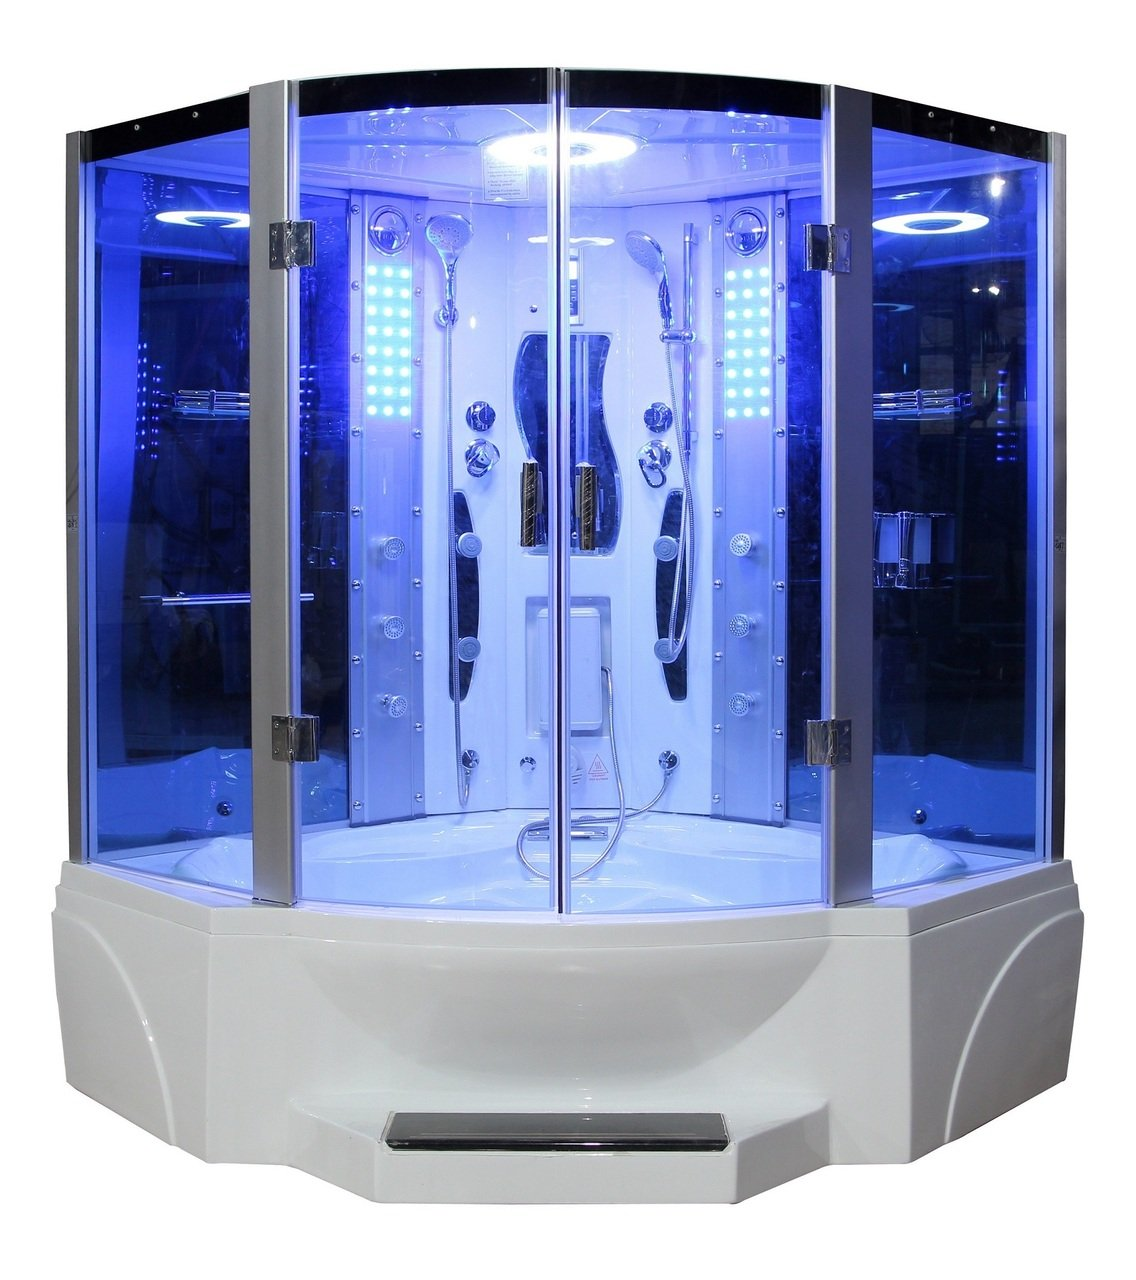 Eagle Bath WS-608P 110v ETL Certified Steam Shower Enclosure (3KW ...